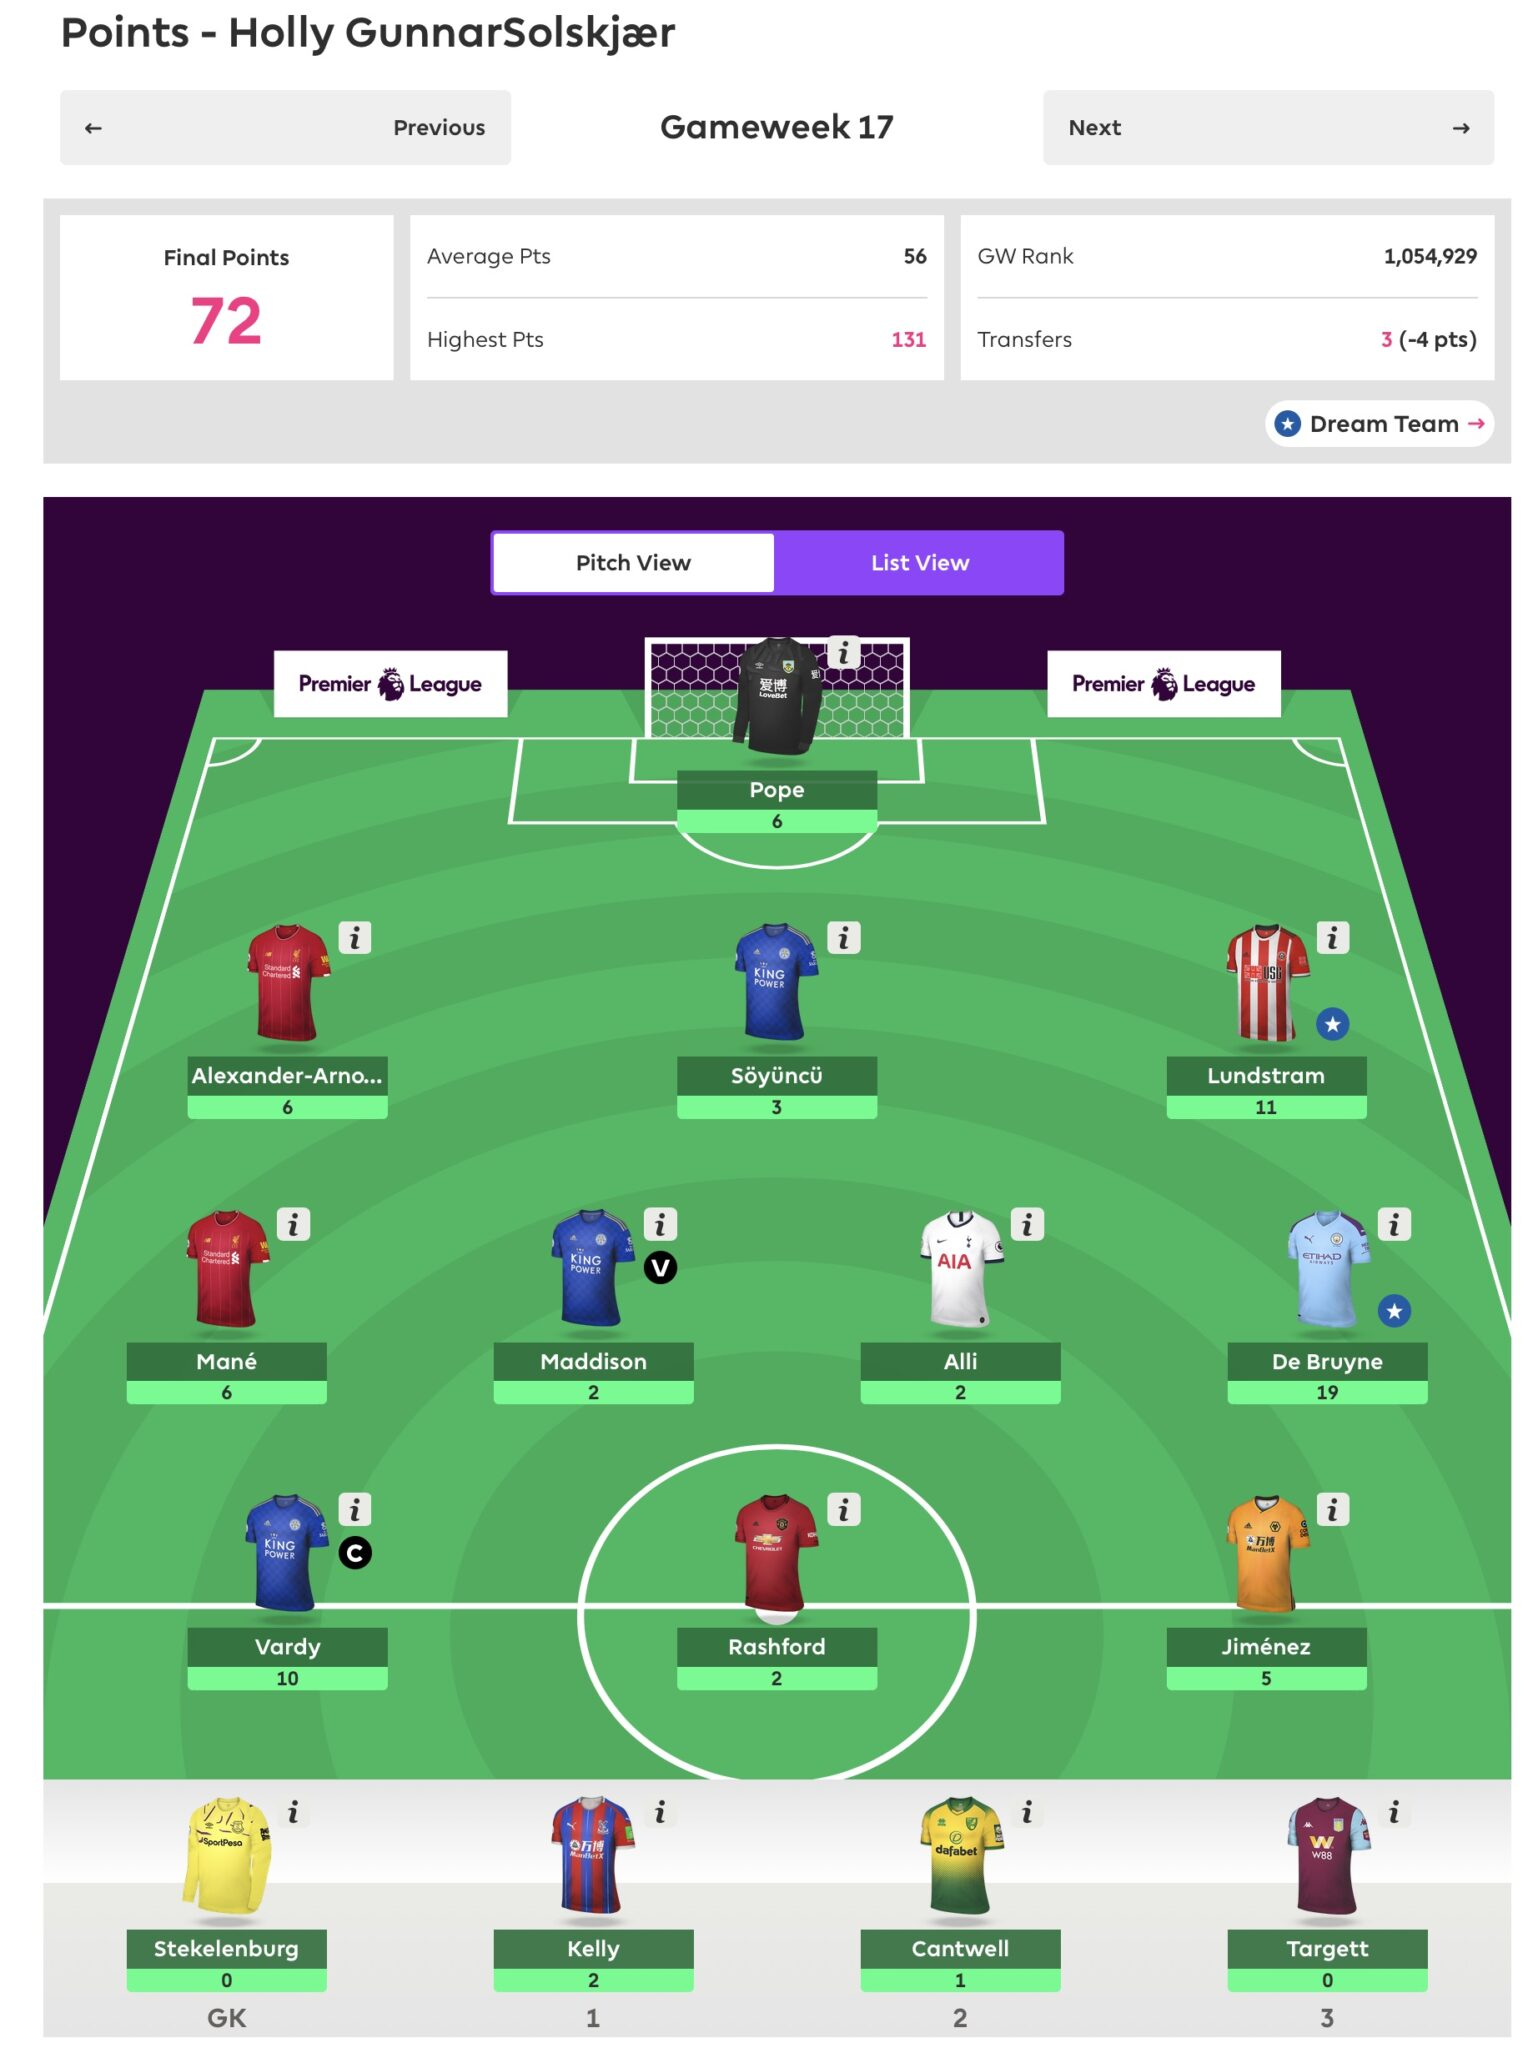 Gameweek 17 Review